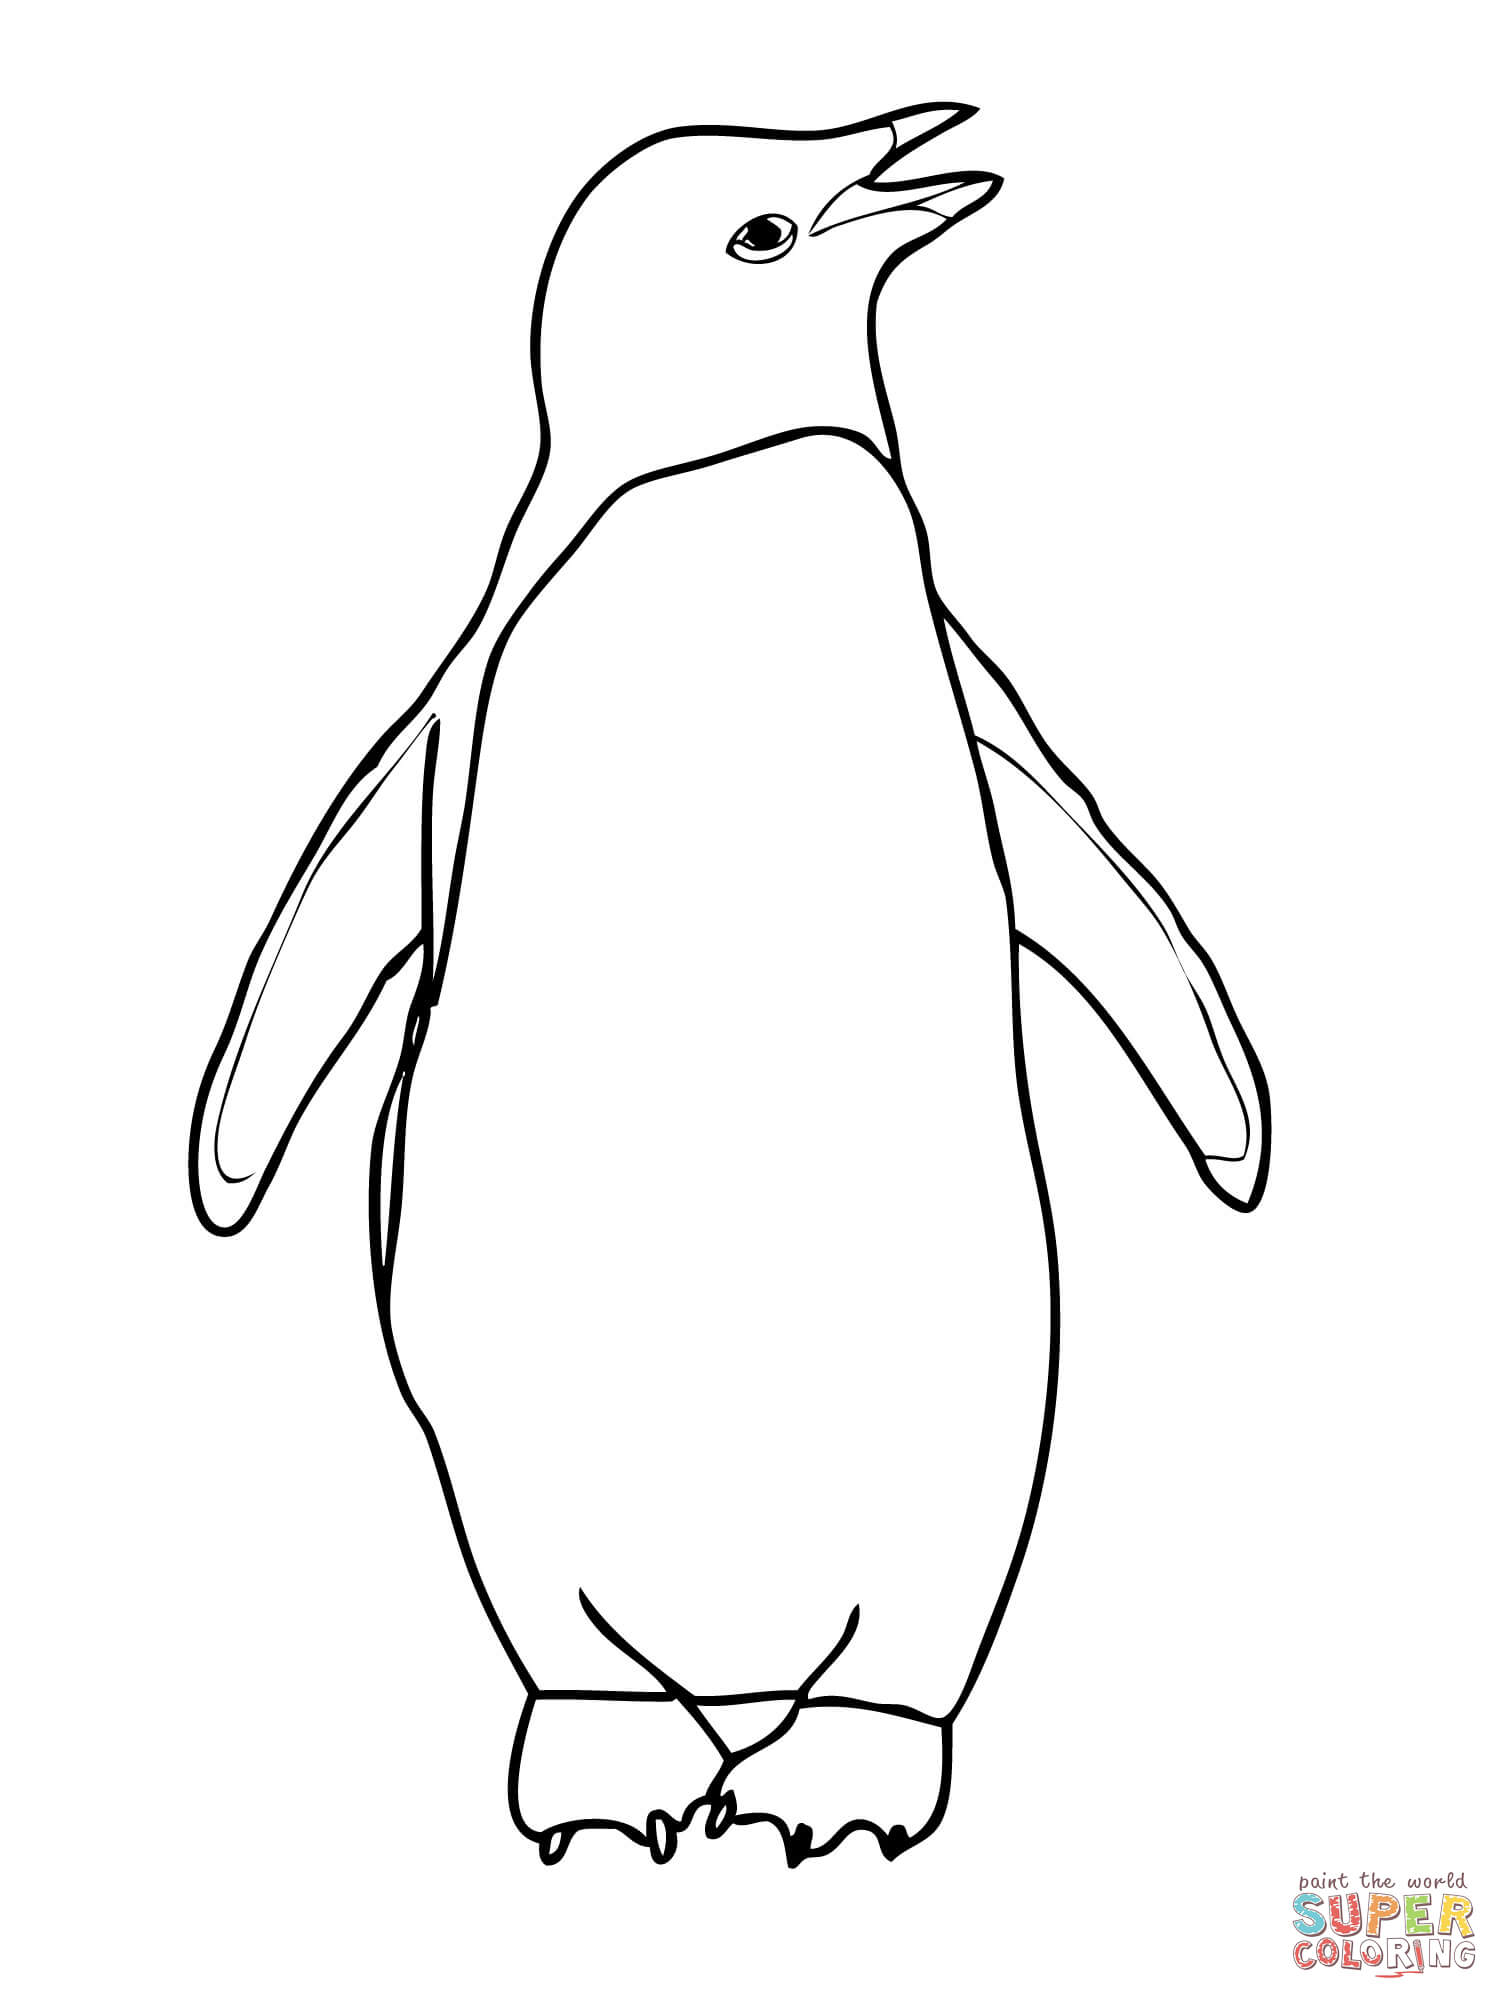 Adelie Penguin clipart #2, Download drawings